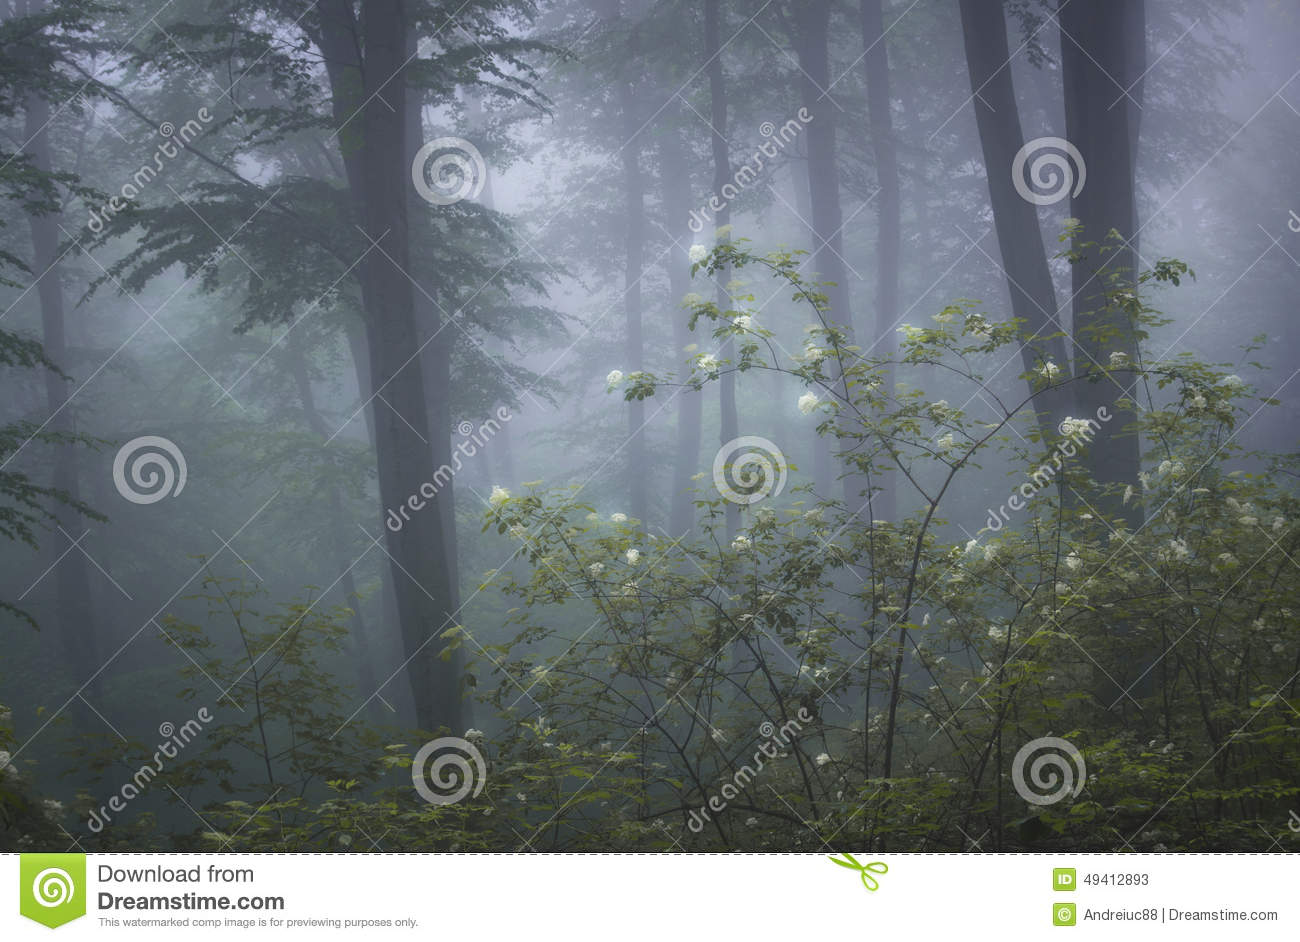 Forest with fog and flowers in bloom